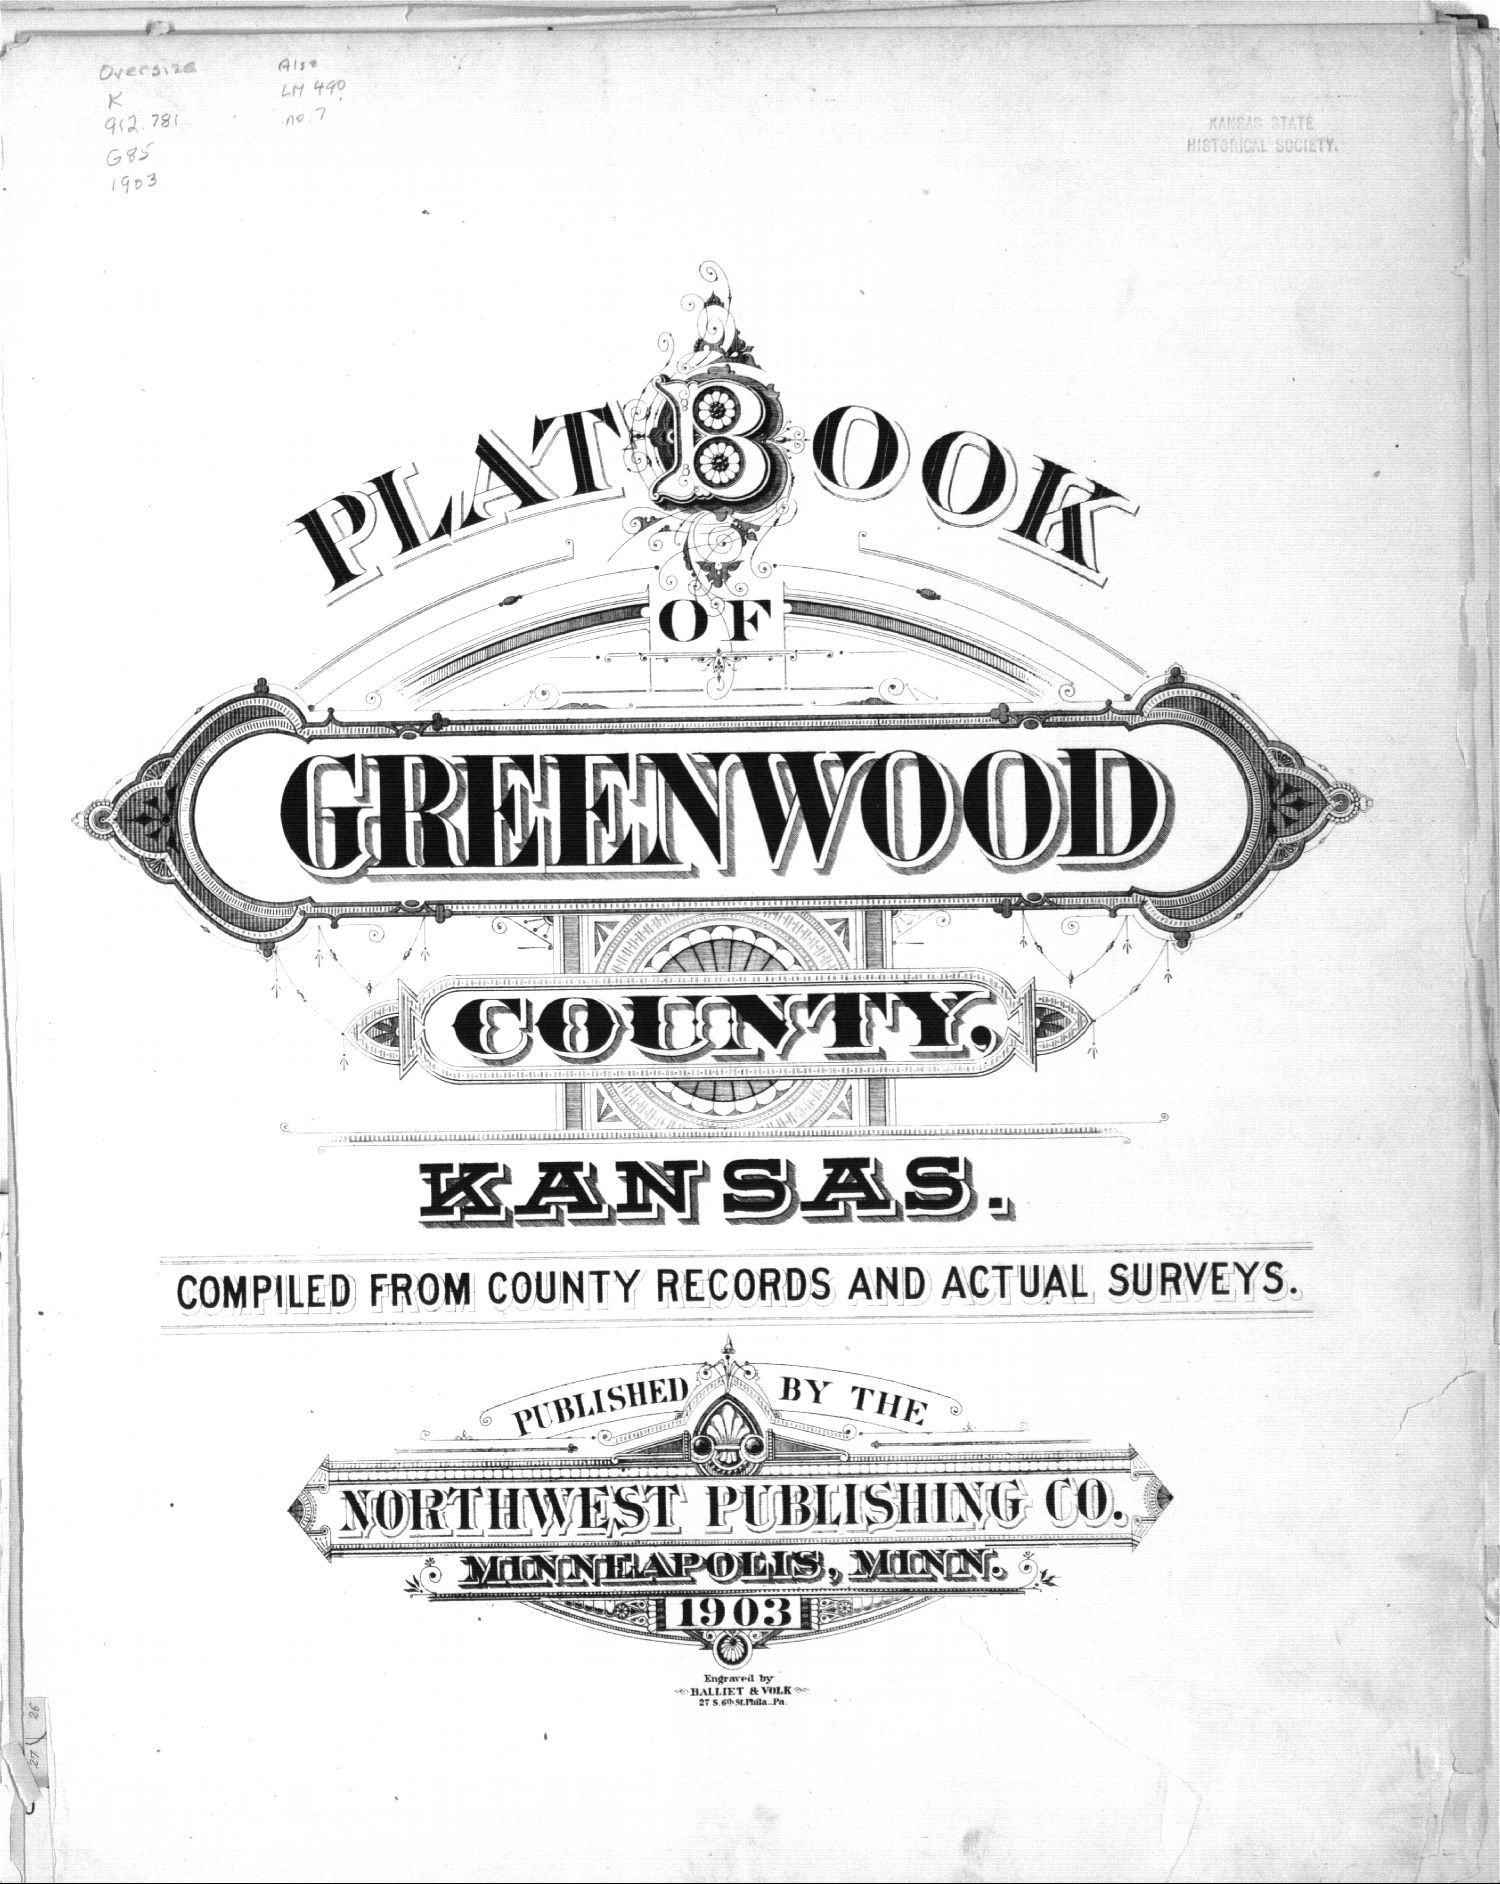 Plat book of Greenwood County, Kansas - Title Page